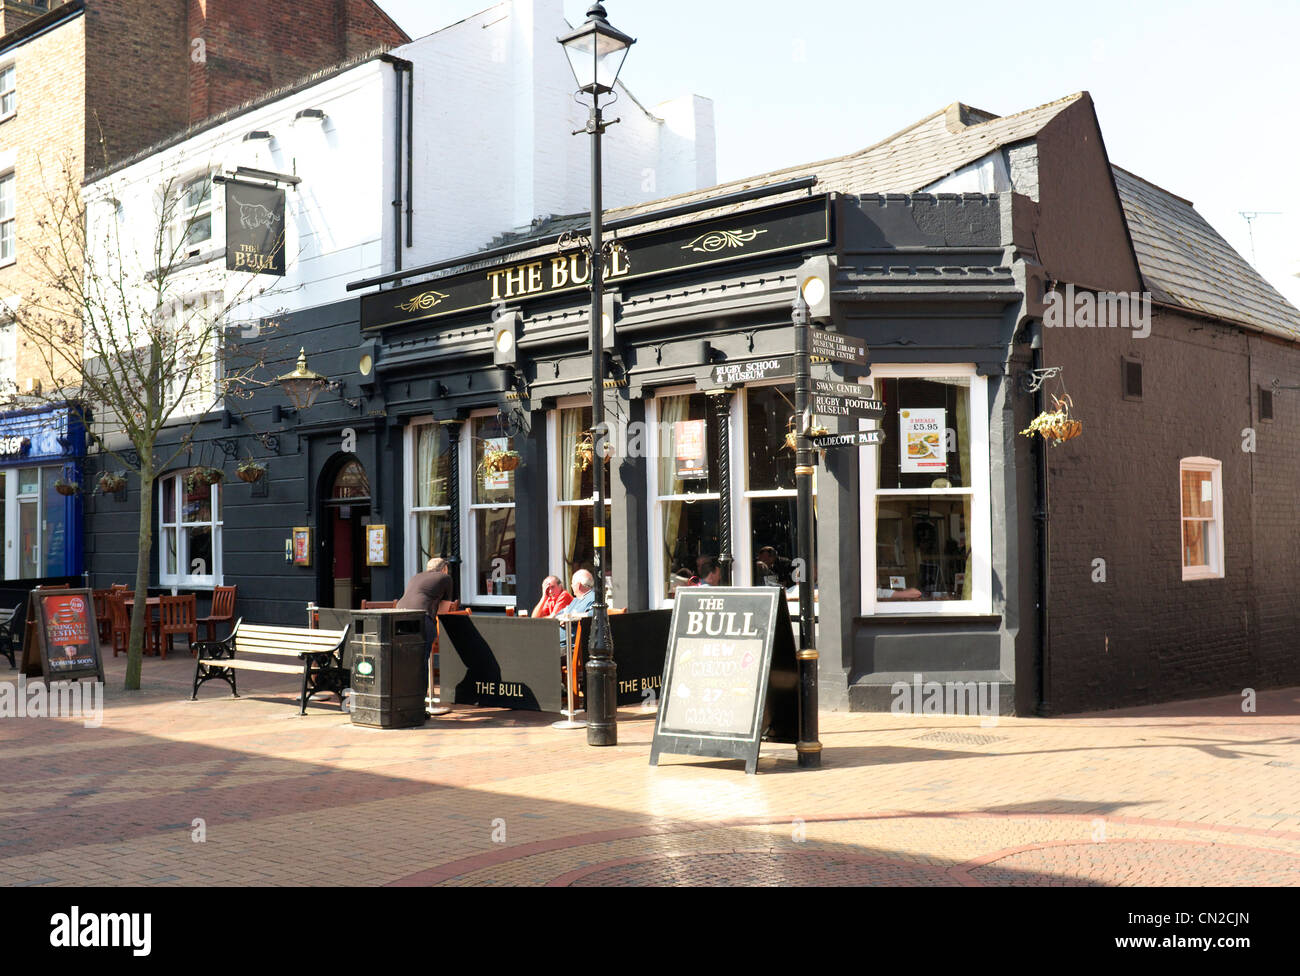 "Rugby town center pubic house ""The Bull"", The Midlands, Warwickshire, United Kingdom - Stock Image"